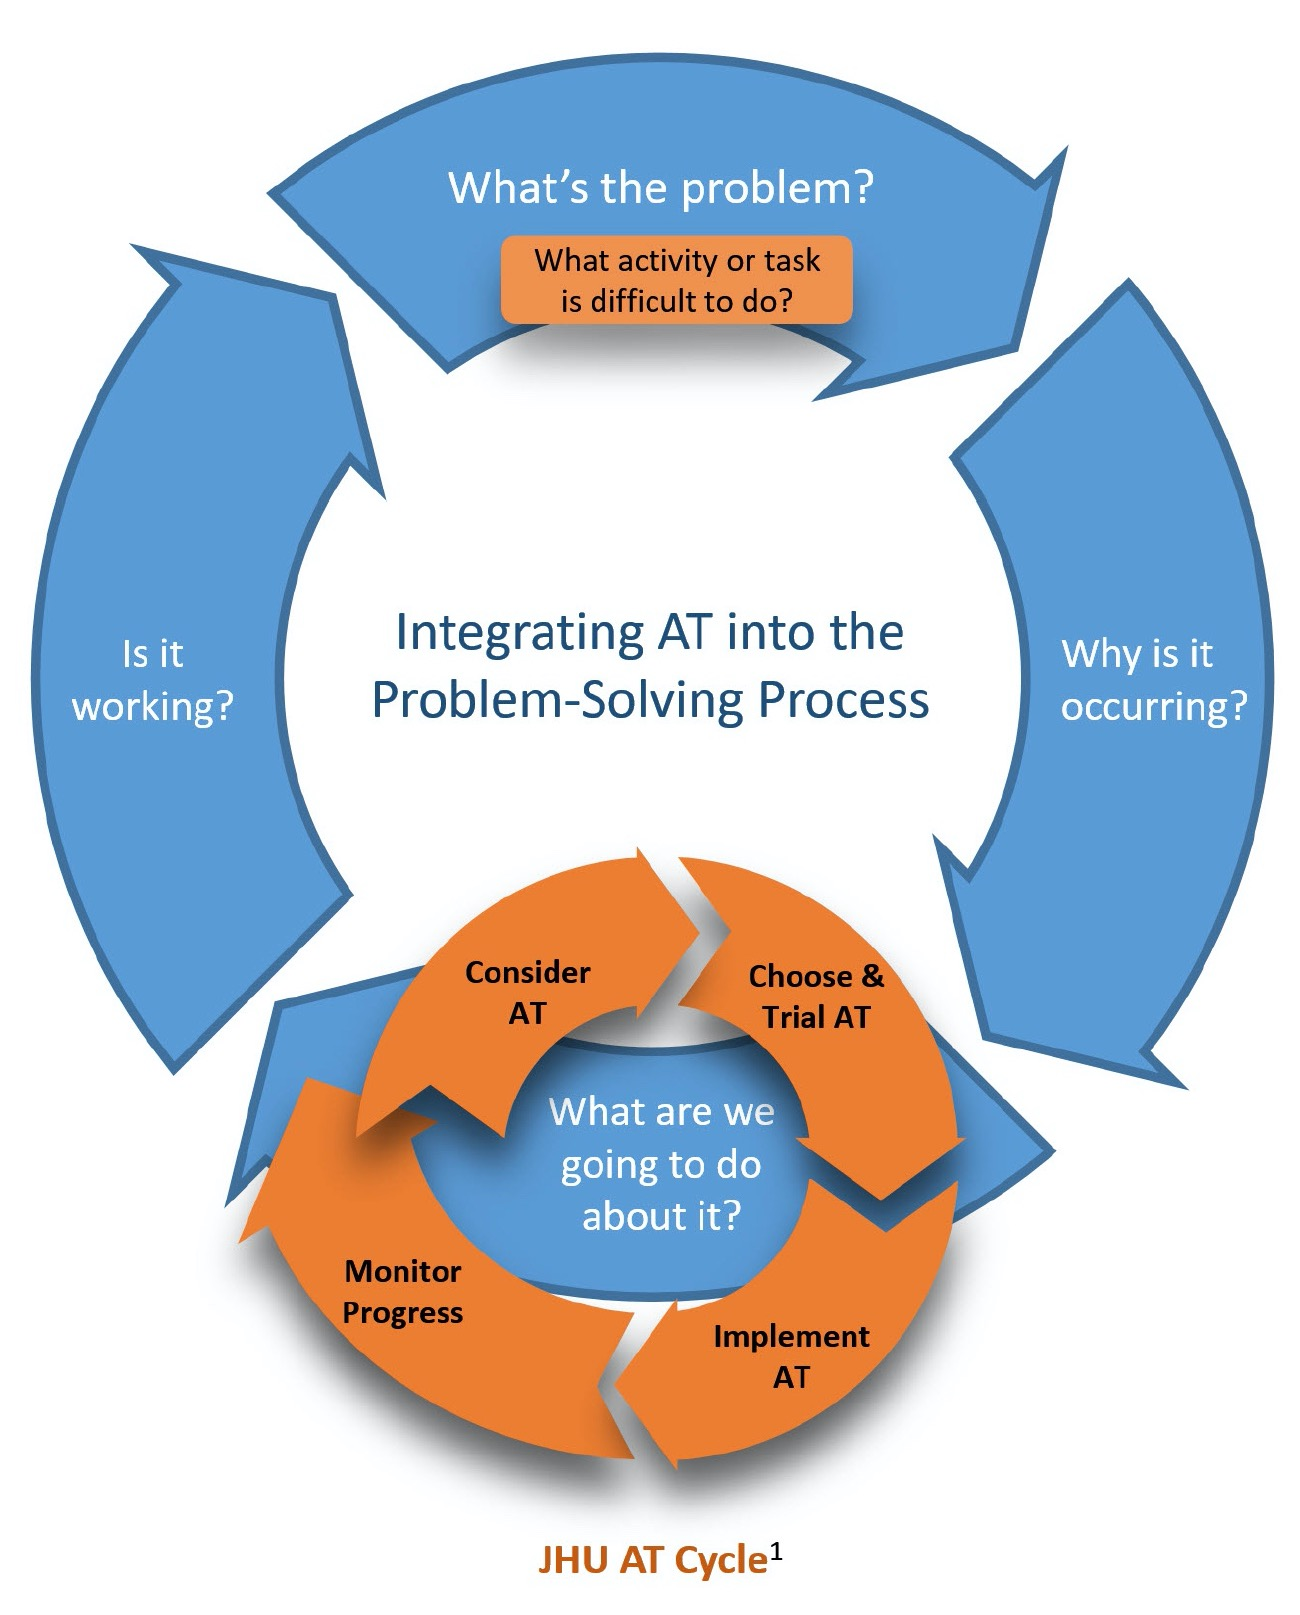 Integrating AT into the Problem-Solving Process: An AT Process Framework for Schools. January 2020, Copyright Daniel Cochrane, MA, MS, ATP.